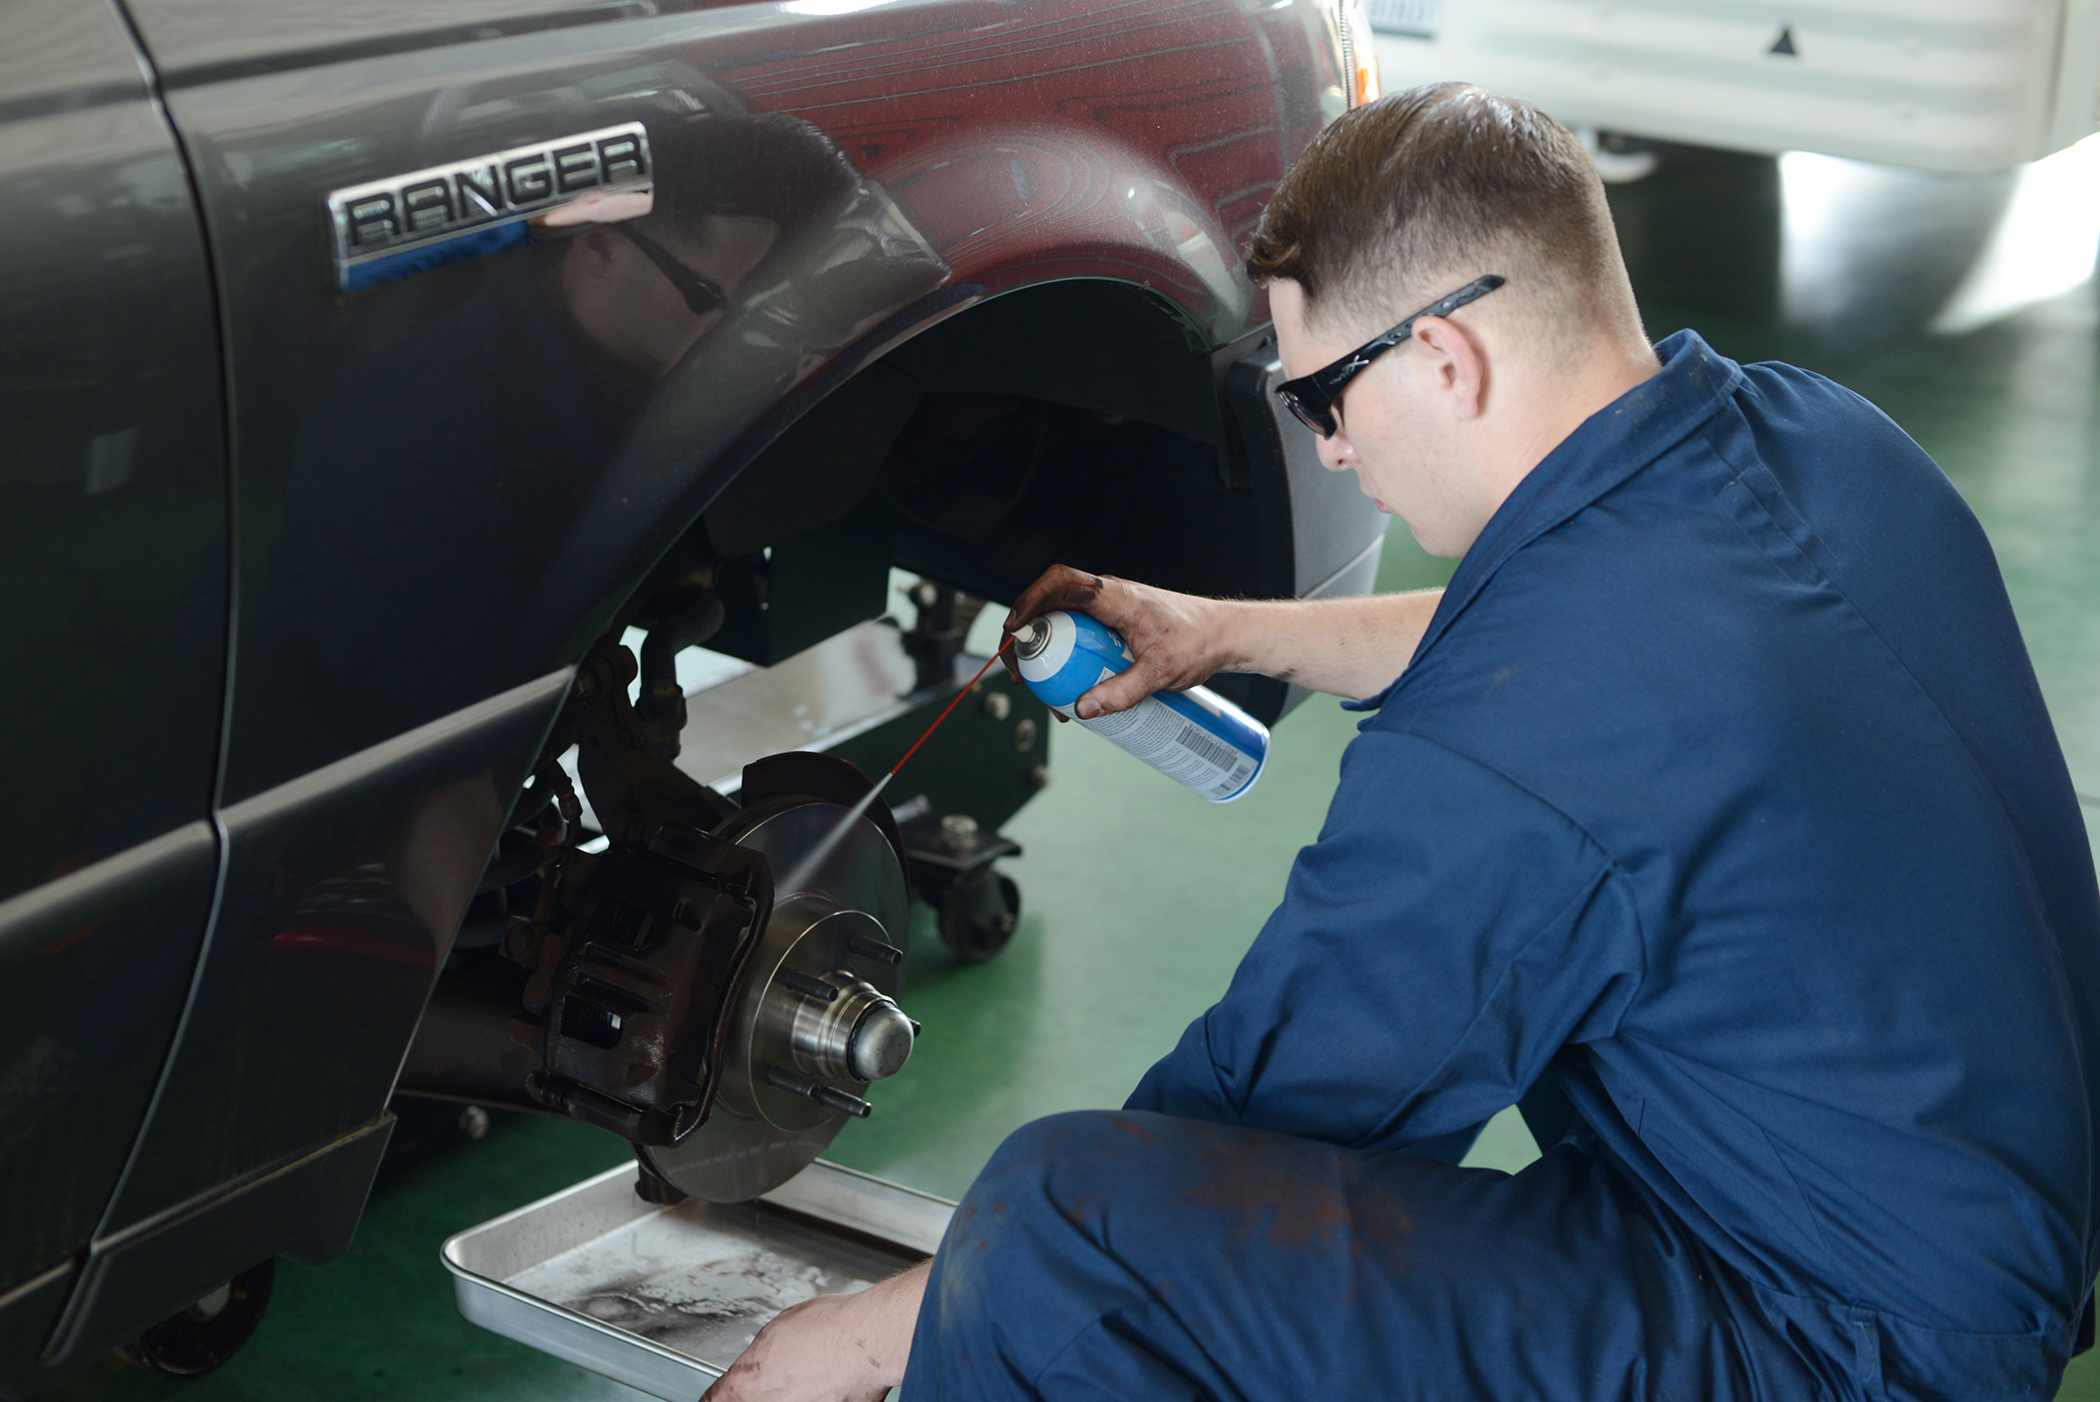 Senior Airman Brandon Higginbotham, 374th Logistics Readiness Squadron vehicle maintenance journeyman, sprays break cleaner to remove manufacturing oils from a new rotor at Yokota Air Base, Japan, April 28, 2015. Removing the oils prevents damage to the pads and rotor. (U.S. Air Force photo by Airman 1st Class David C. Danford/Released)